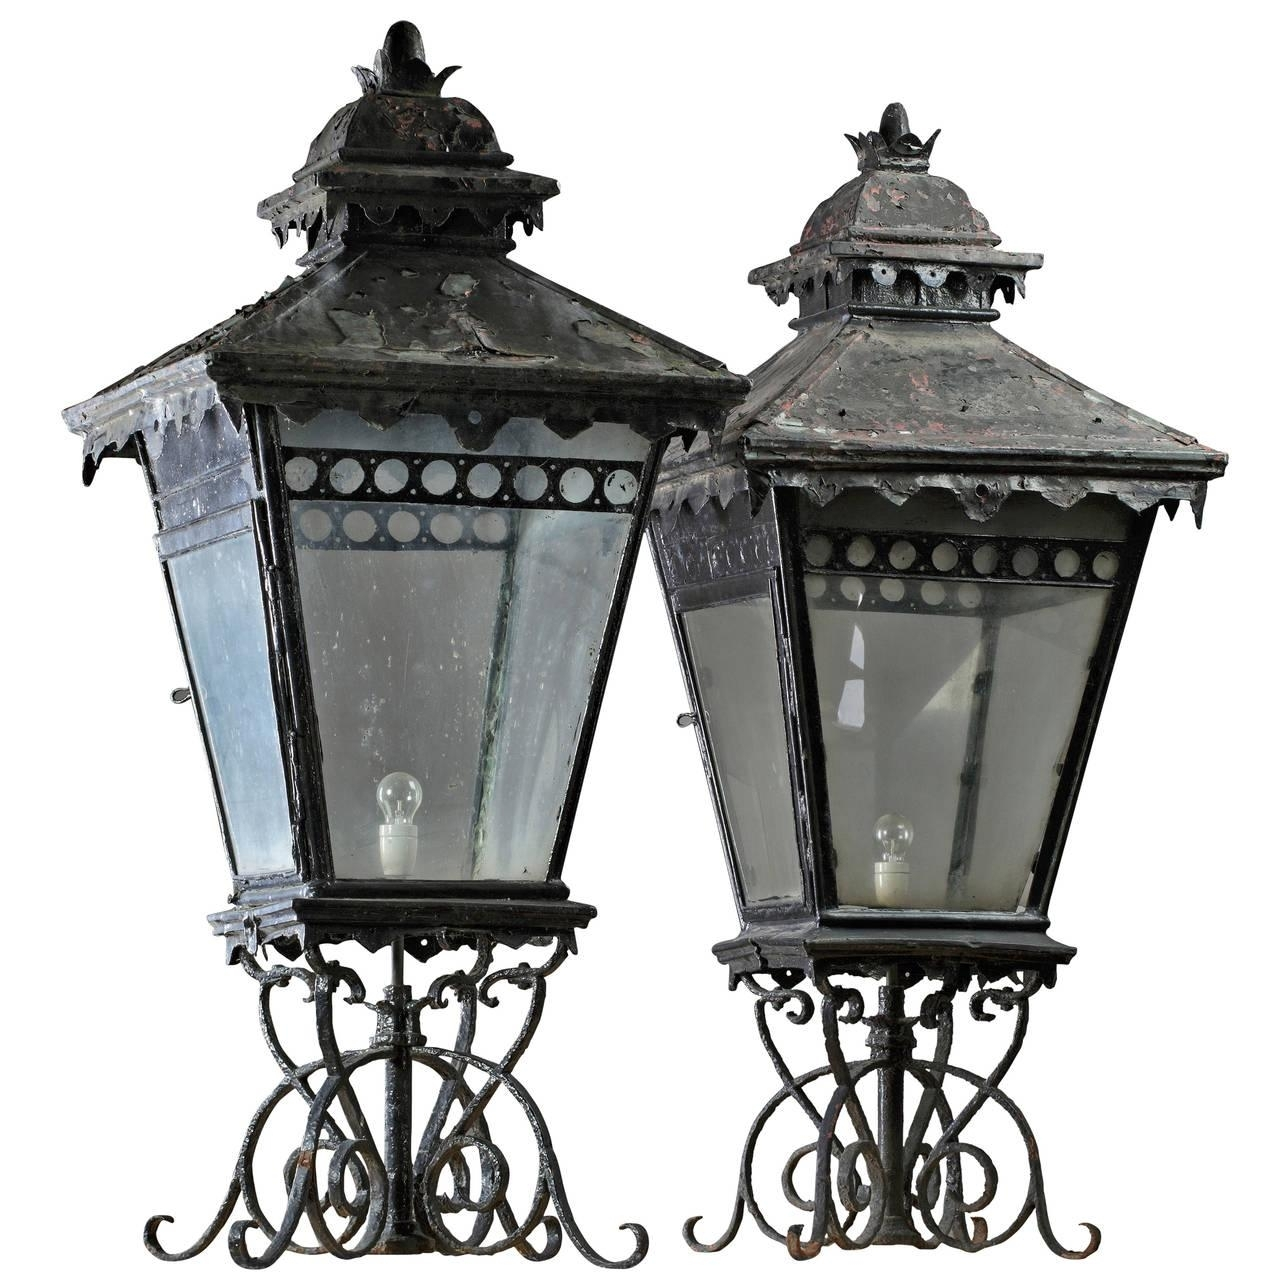 Wrought Iron Hanging Lanterns - Home Design Ideas within Outdoor Iron Lanterns (Image 19 of 20)